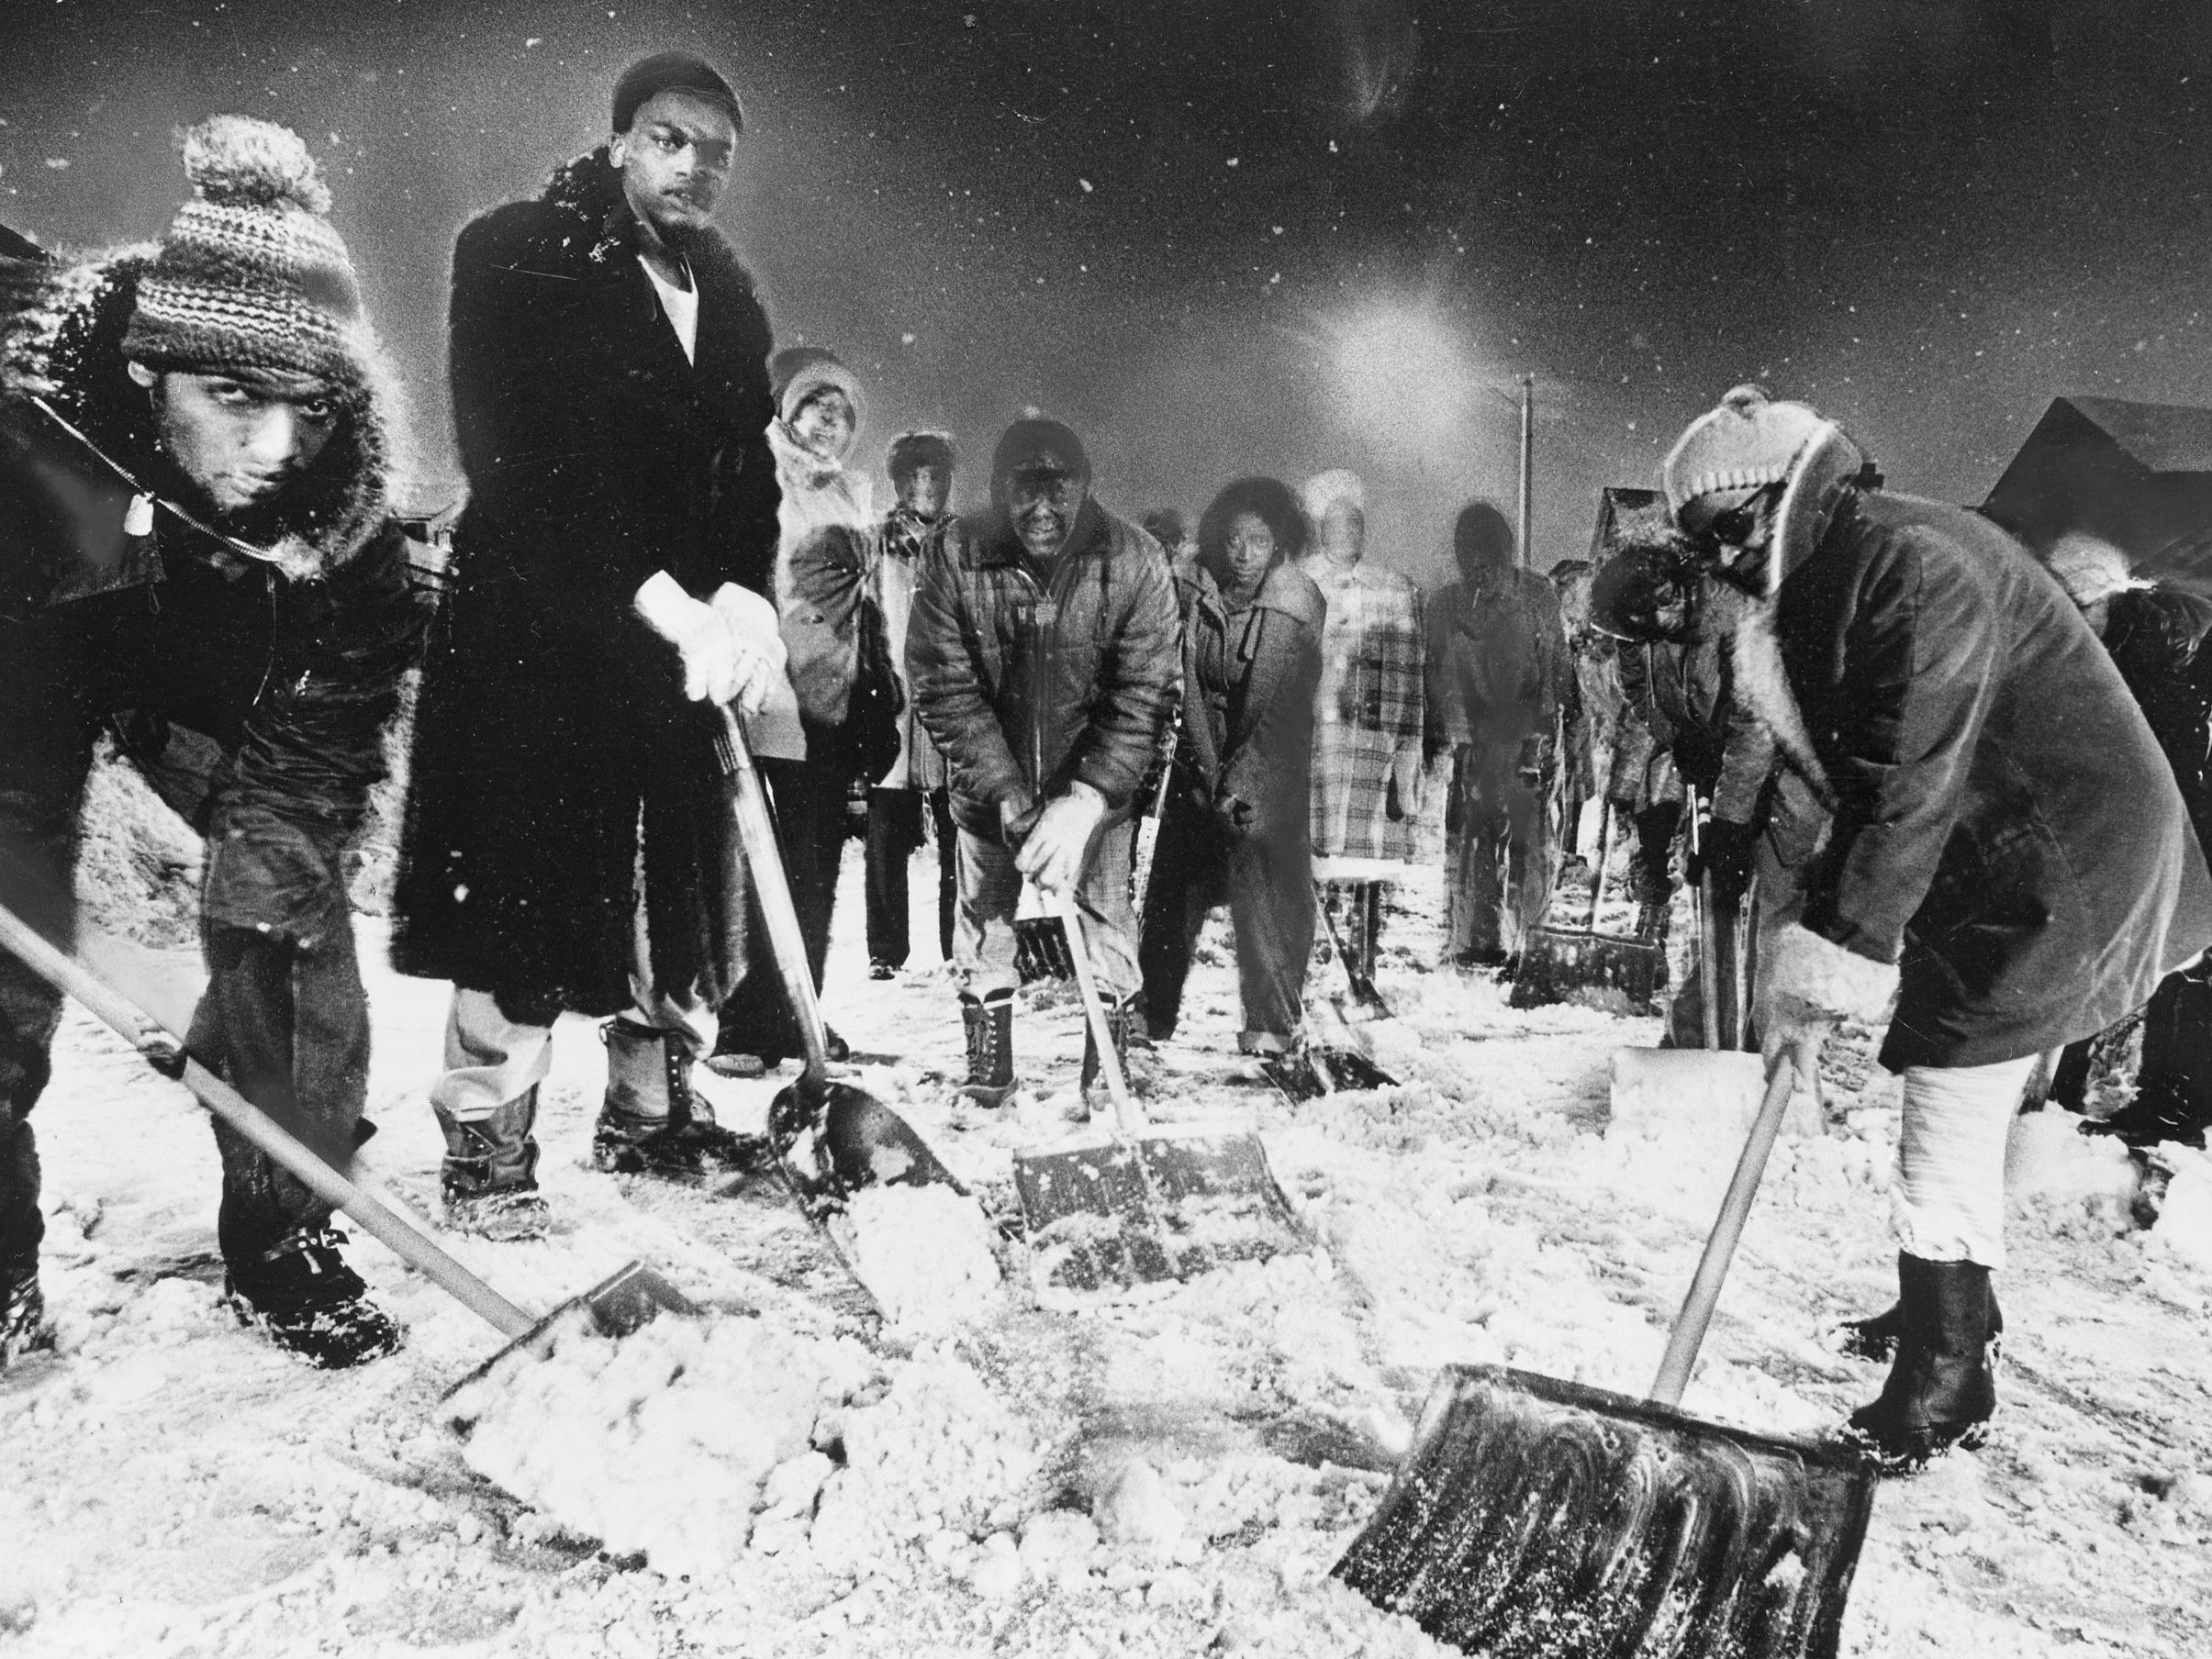 Neighbors in the 3300 block of North 15th Street grab their shovels to clean up the last of the snow on Jan. 27, 1979. The volunteer effort came after Milwaukee had trouble digging out of its third major snowstorm in a month. This photo was published in the Jan. 28, 1979, Milwaukee Journal.